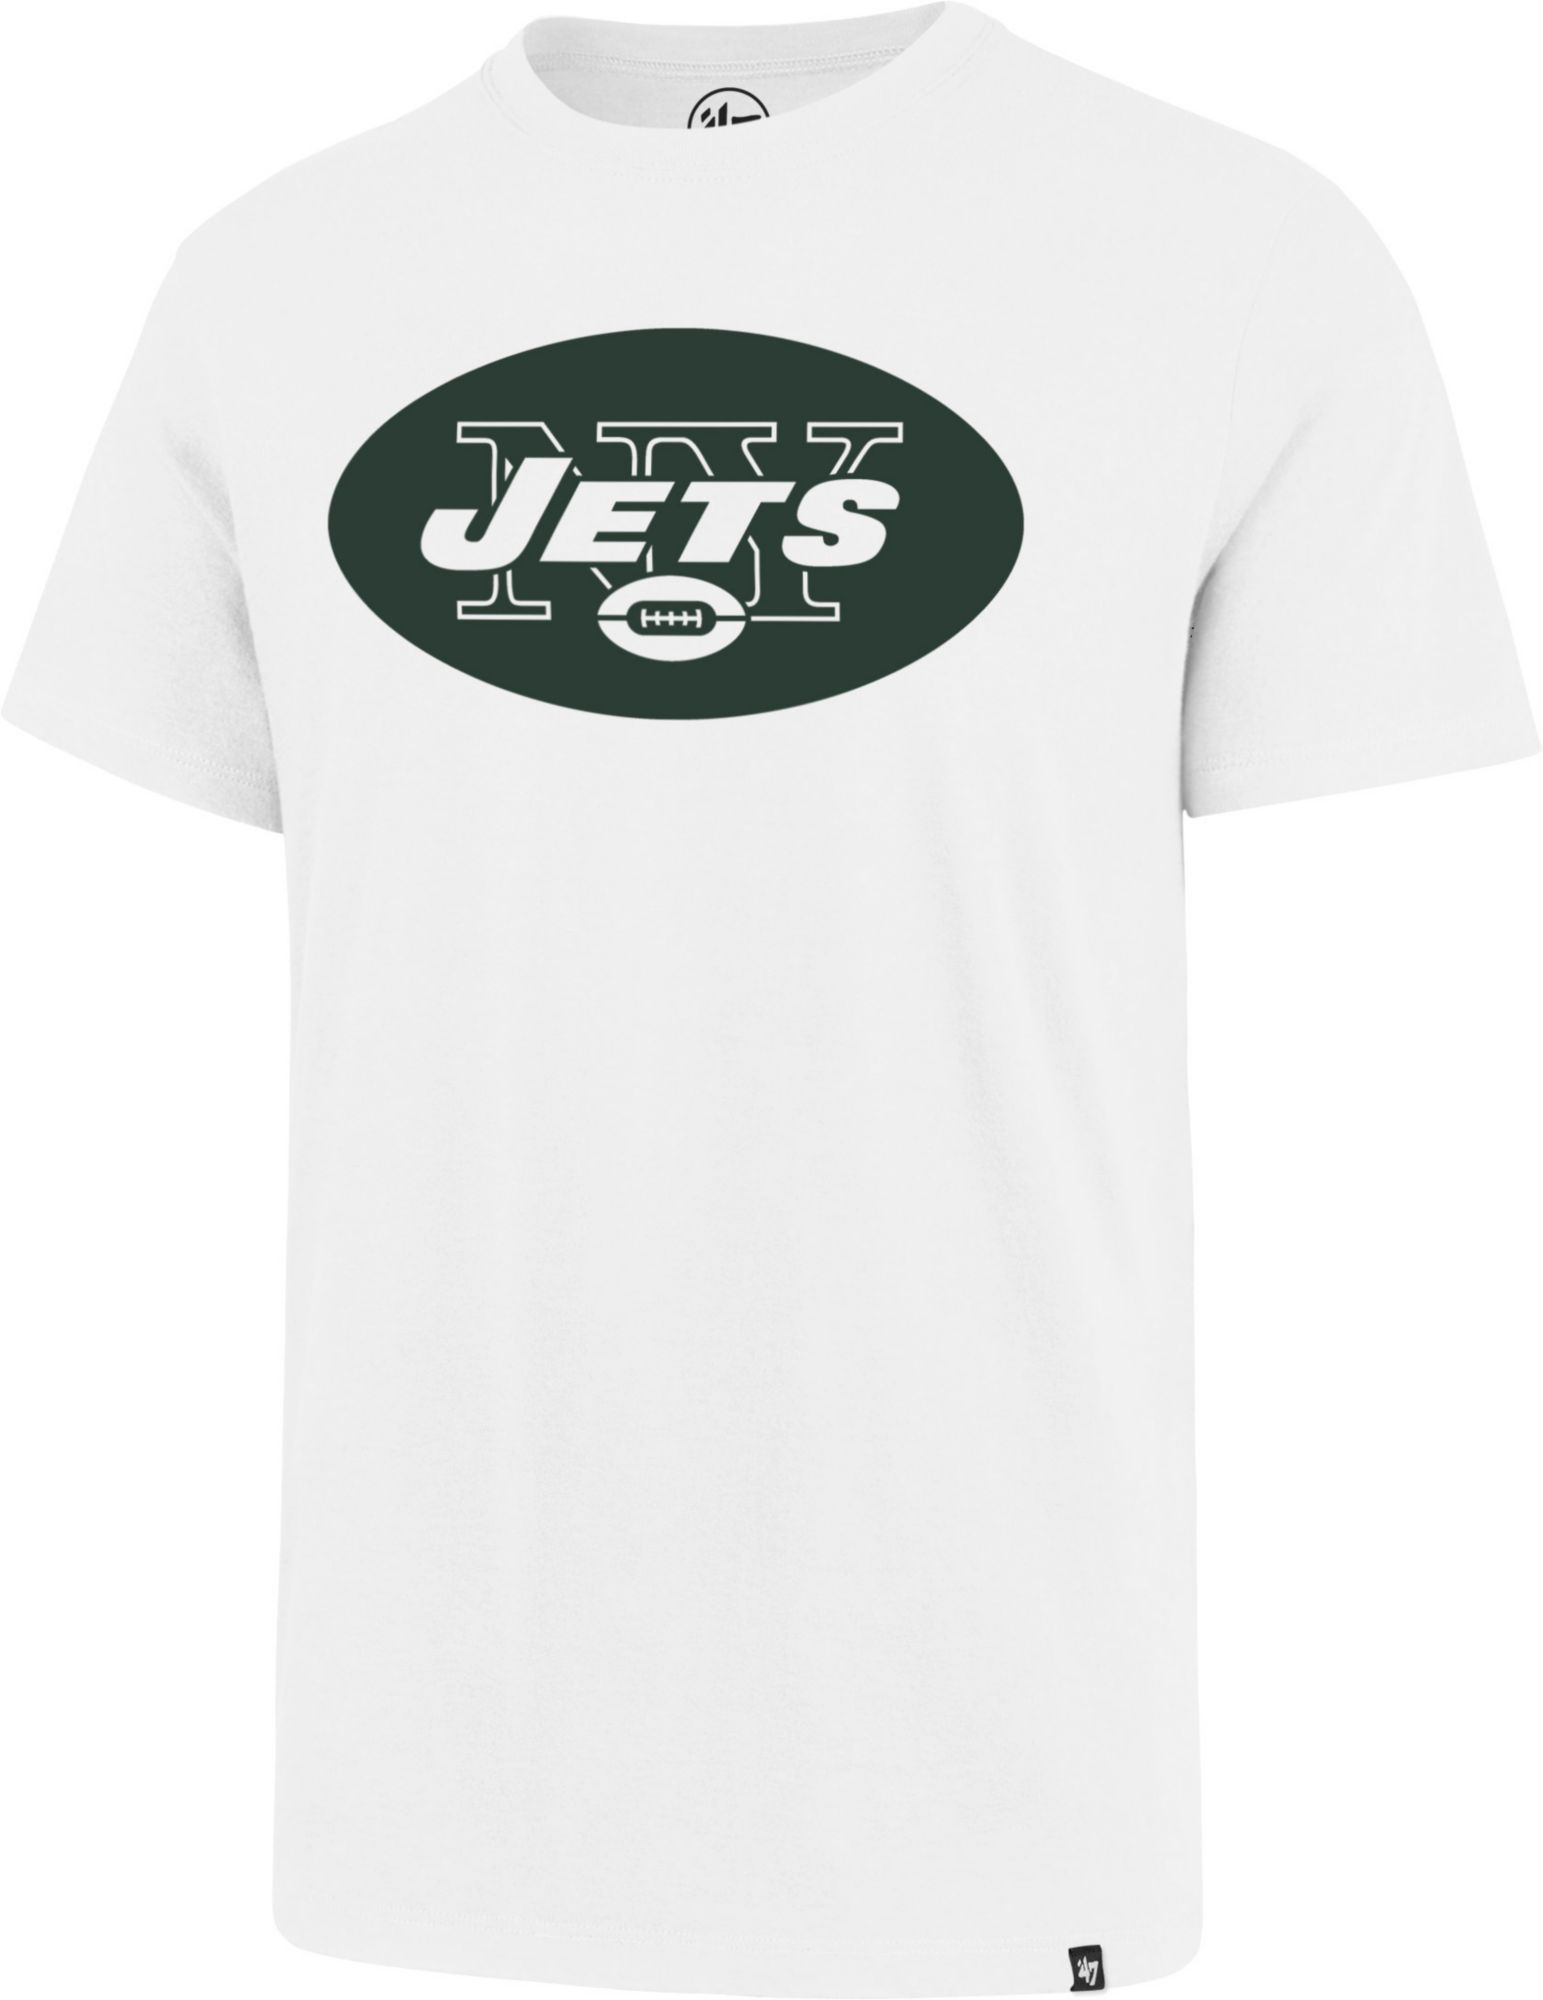 nfl new york jets t shirt grey official licensed sport christmas gift